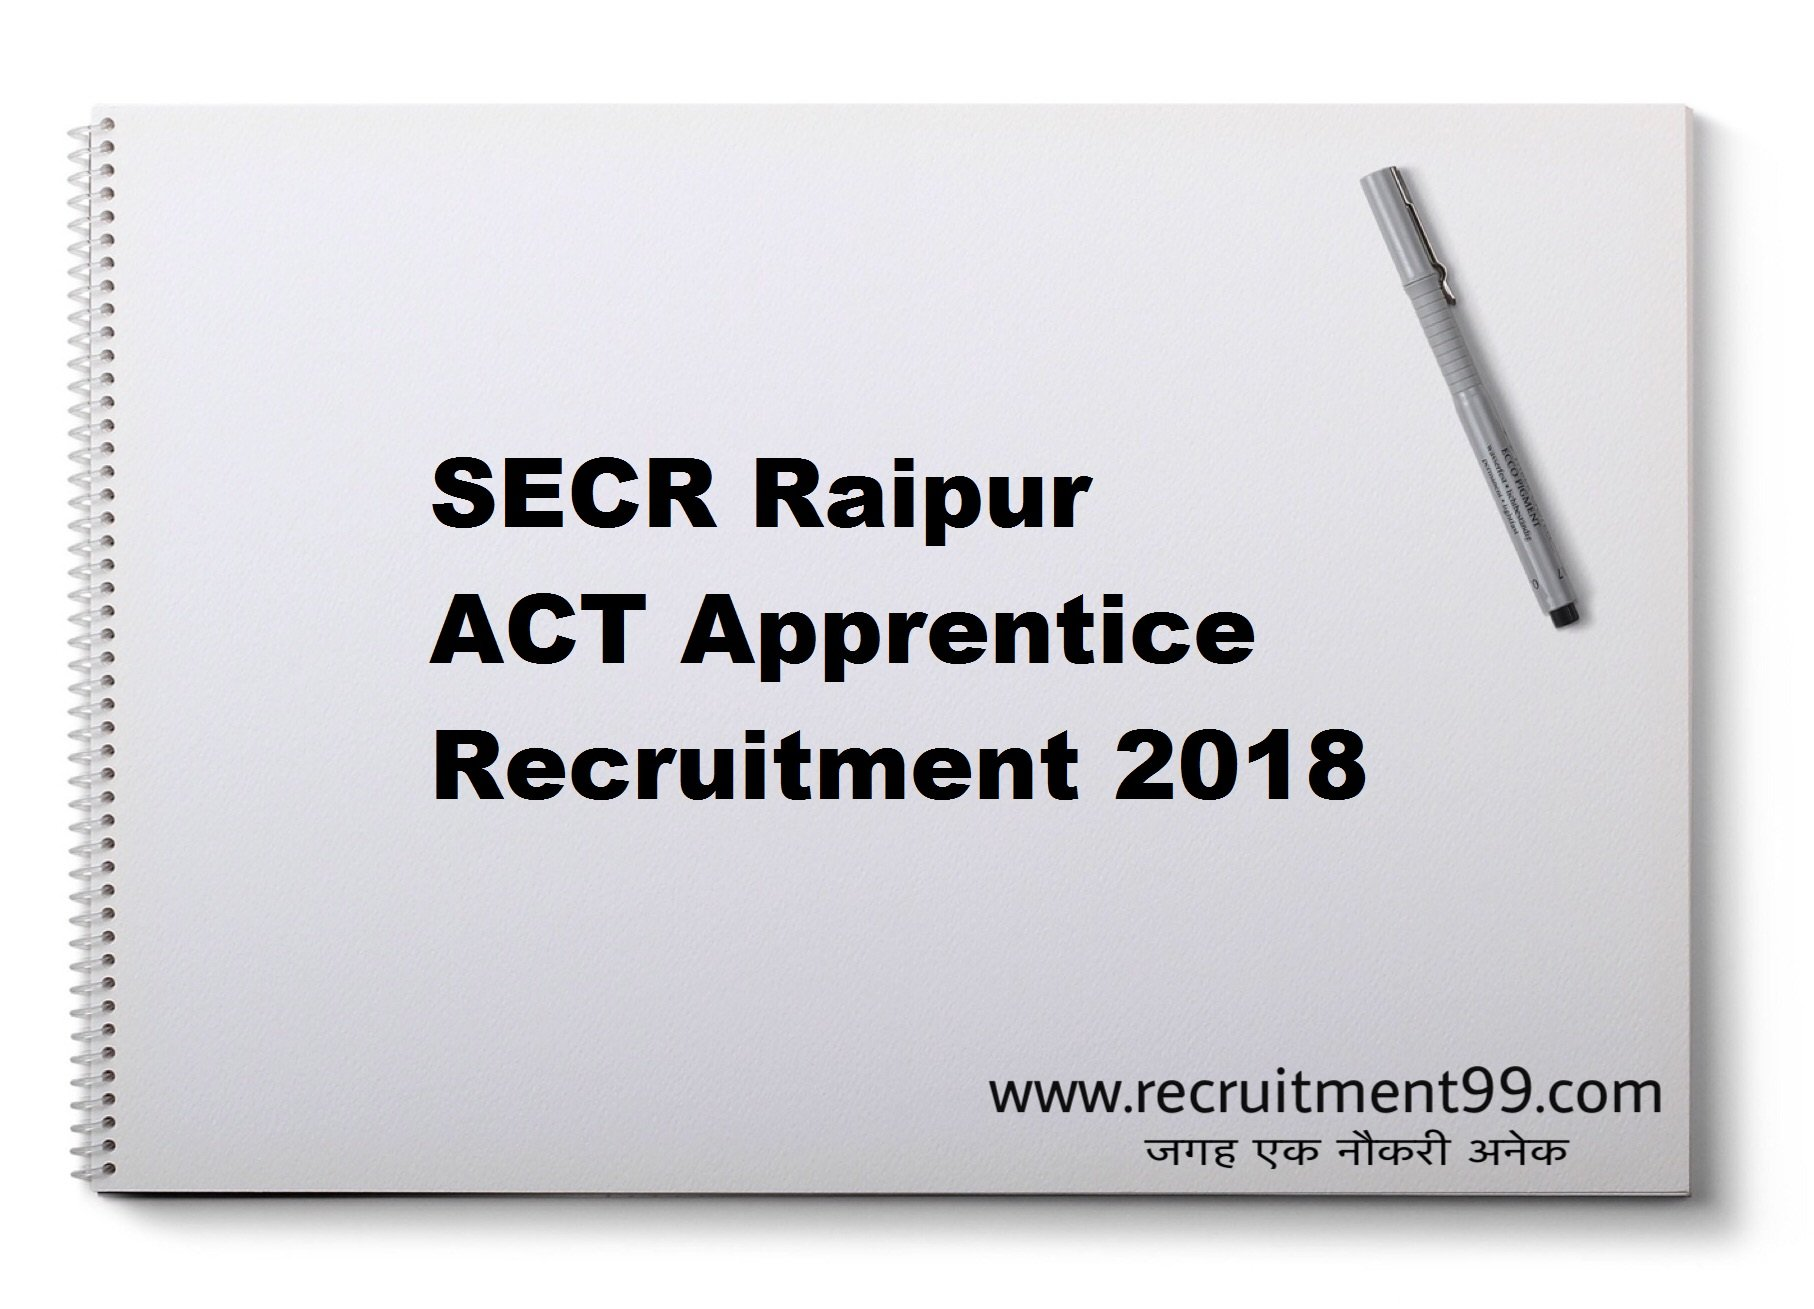 SECR Raipur ACT Apprentice Recruitment Admit Card Result 2018